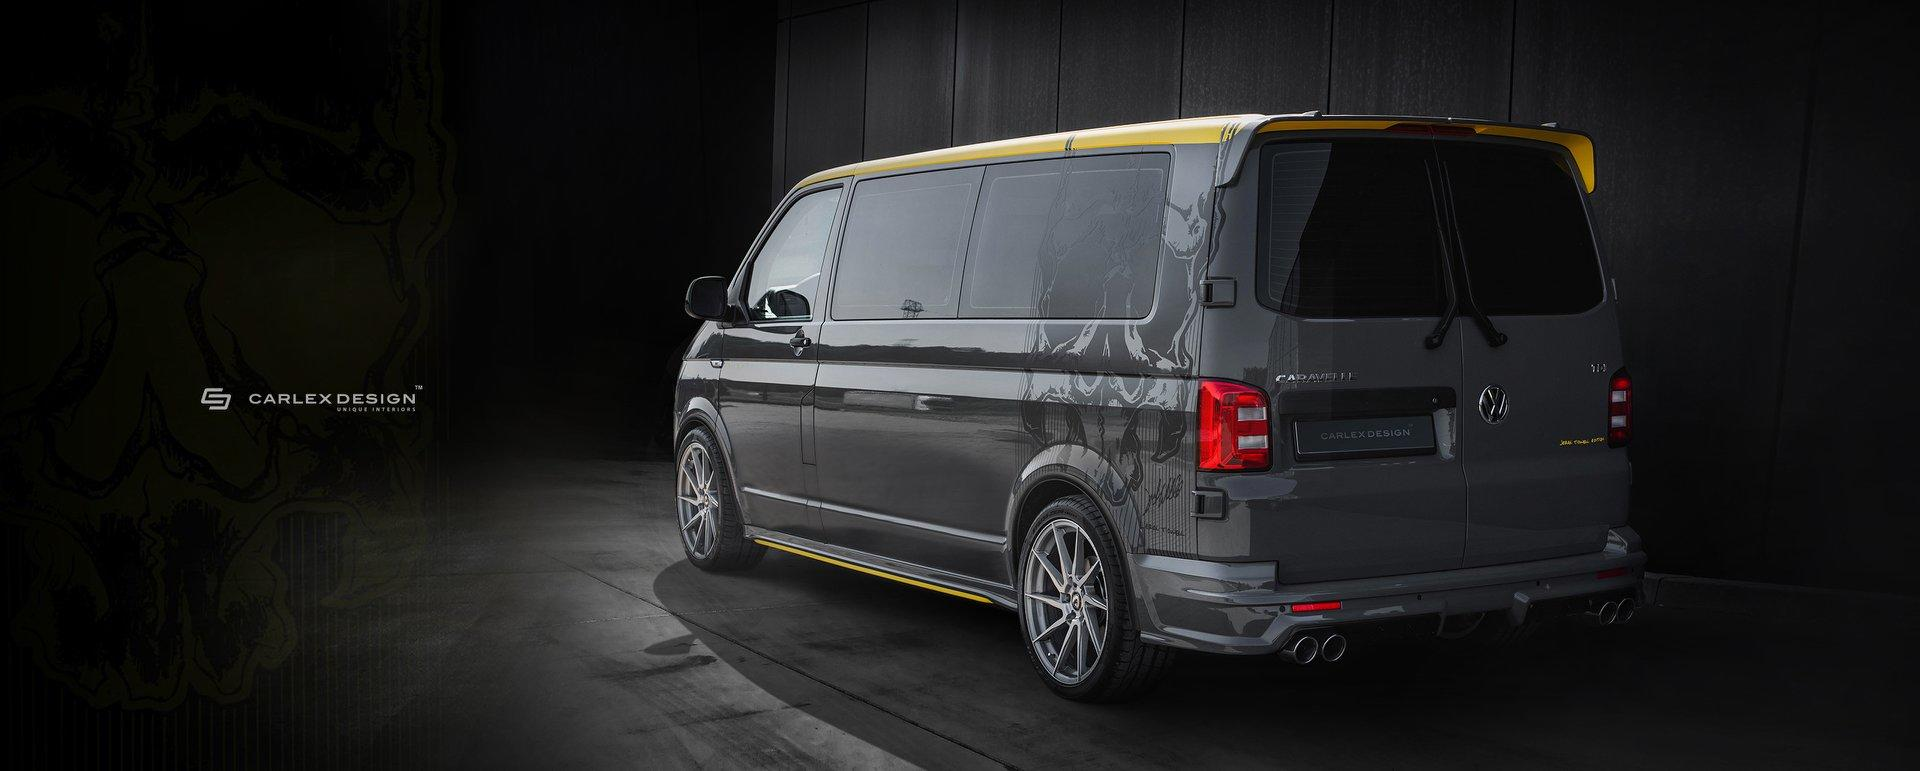 Volkswagen T6 by Carlex Design - Volkswagen T6 by Carlex Design